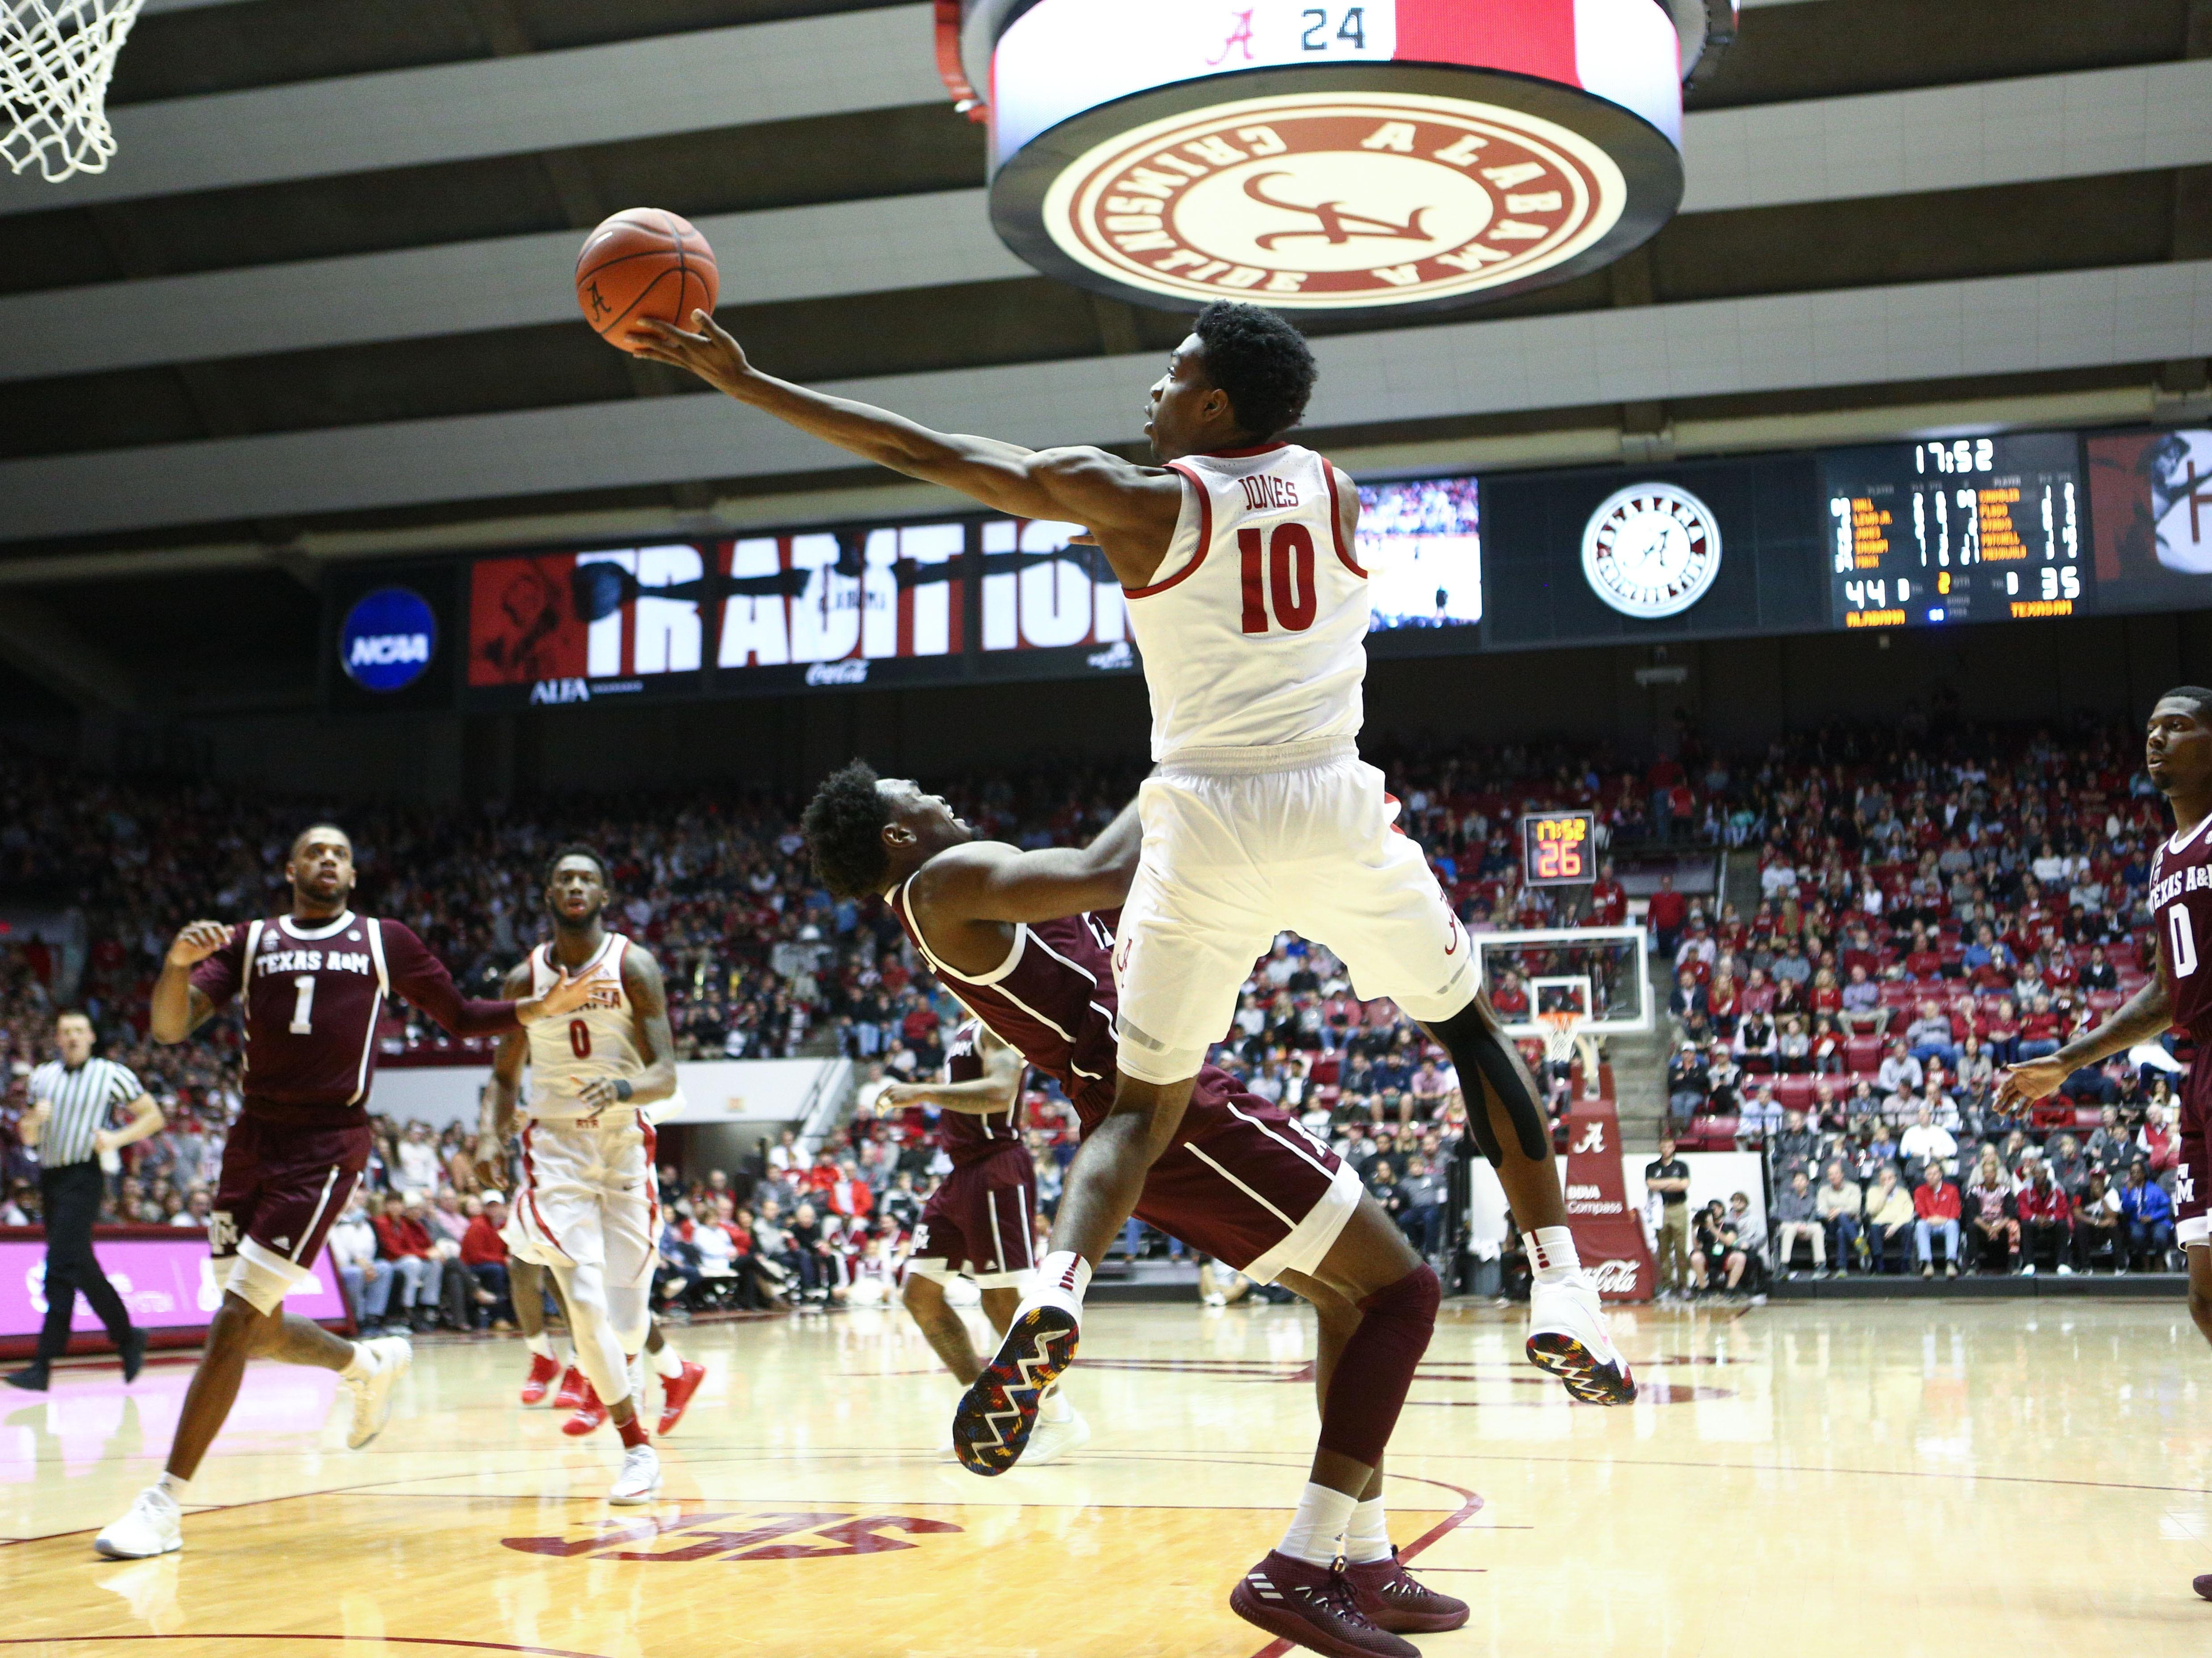 Jan 12, 2019; Tuscaloosa, AL, USA; Alabama Crimson Tide guard Herbert Jones (10) goes to the basket against Texas A&M Aggies forward Christian Mekowulu (21) during the second half at Coleman Coliseum. Mandatory Credit: Marvin Gentry-USA TODAY Sports